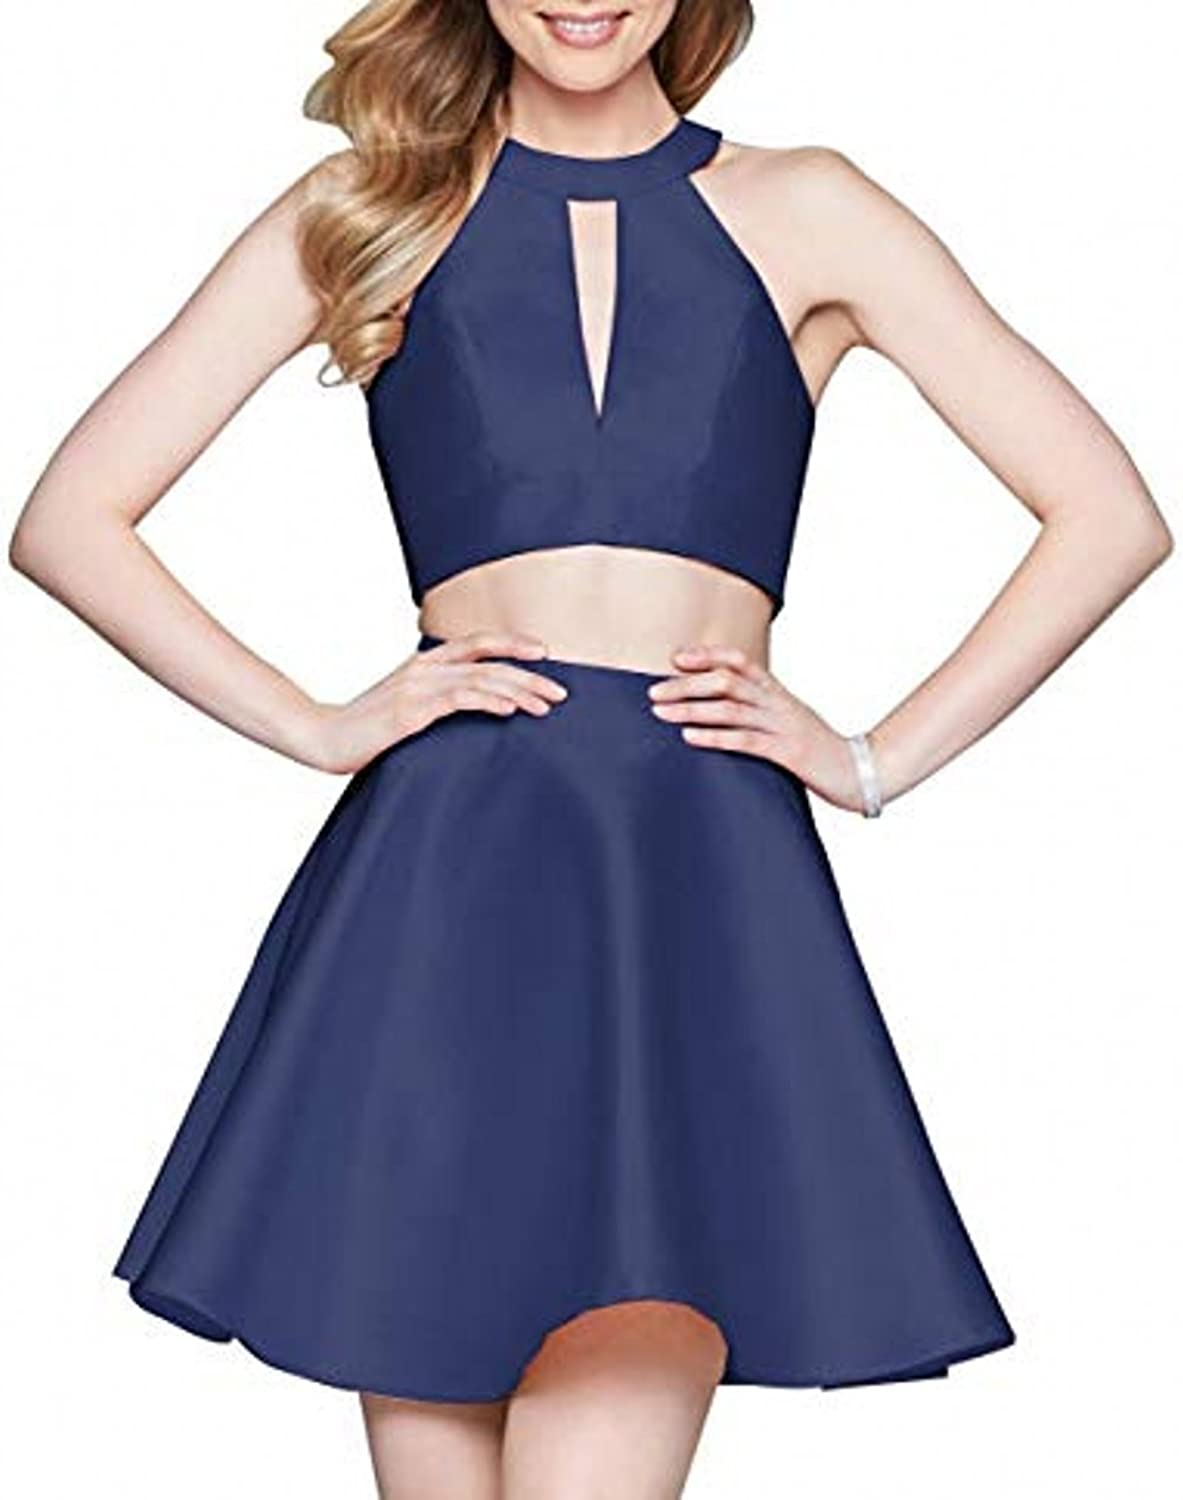 LEJY Short Halter Homecoming Dresses 2018 Two Pieces Satin Mini Prom Dress with Bow